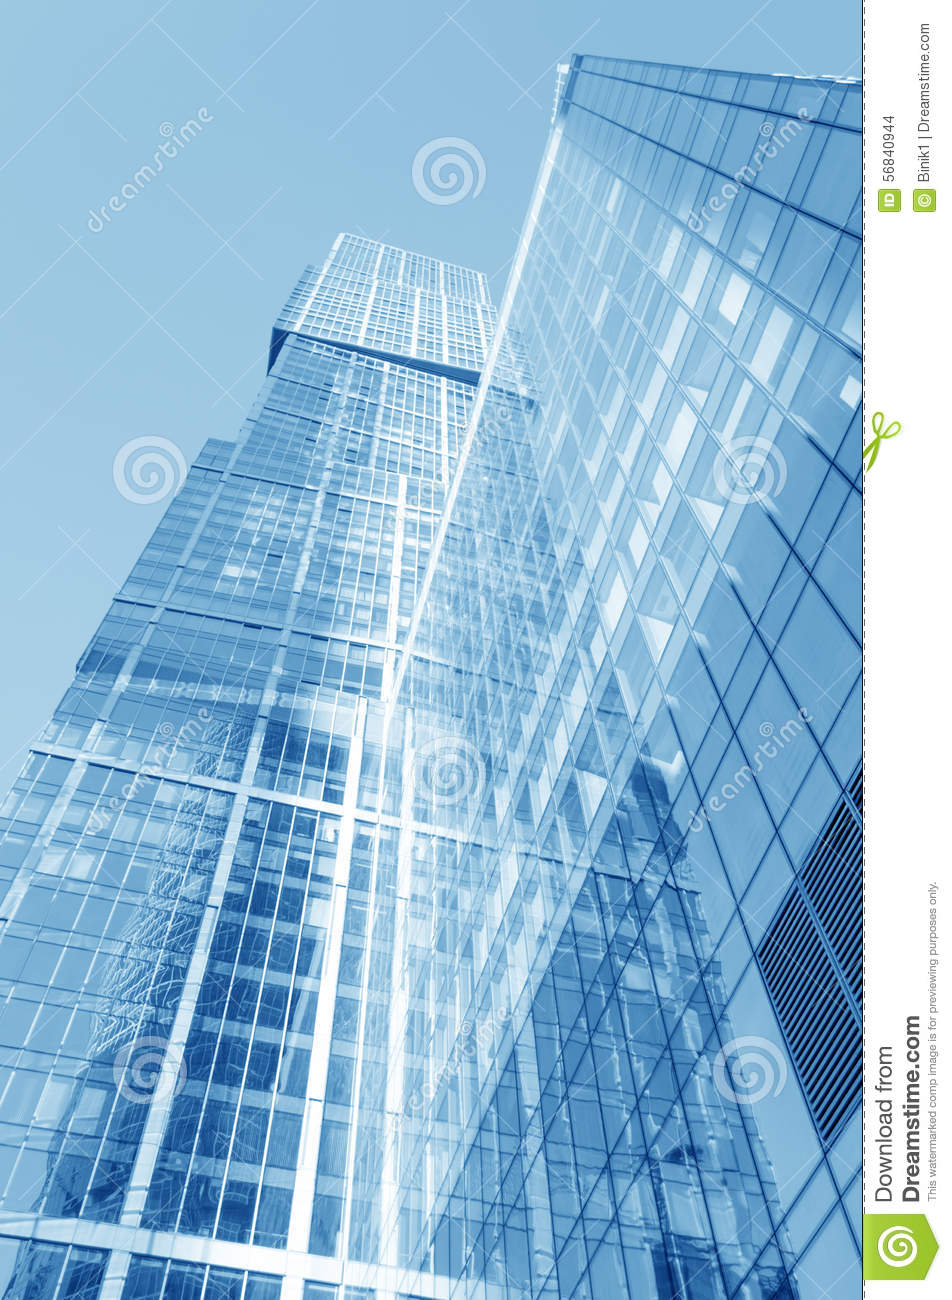 Low Angle View To Light Glass Buildings Of Business Center: Perspective Wide Angle View To Blue Glass Building